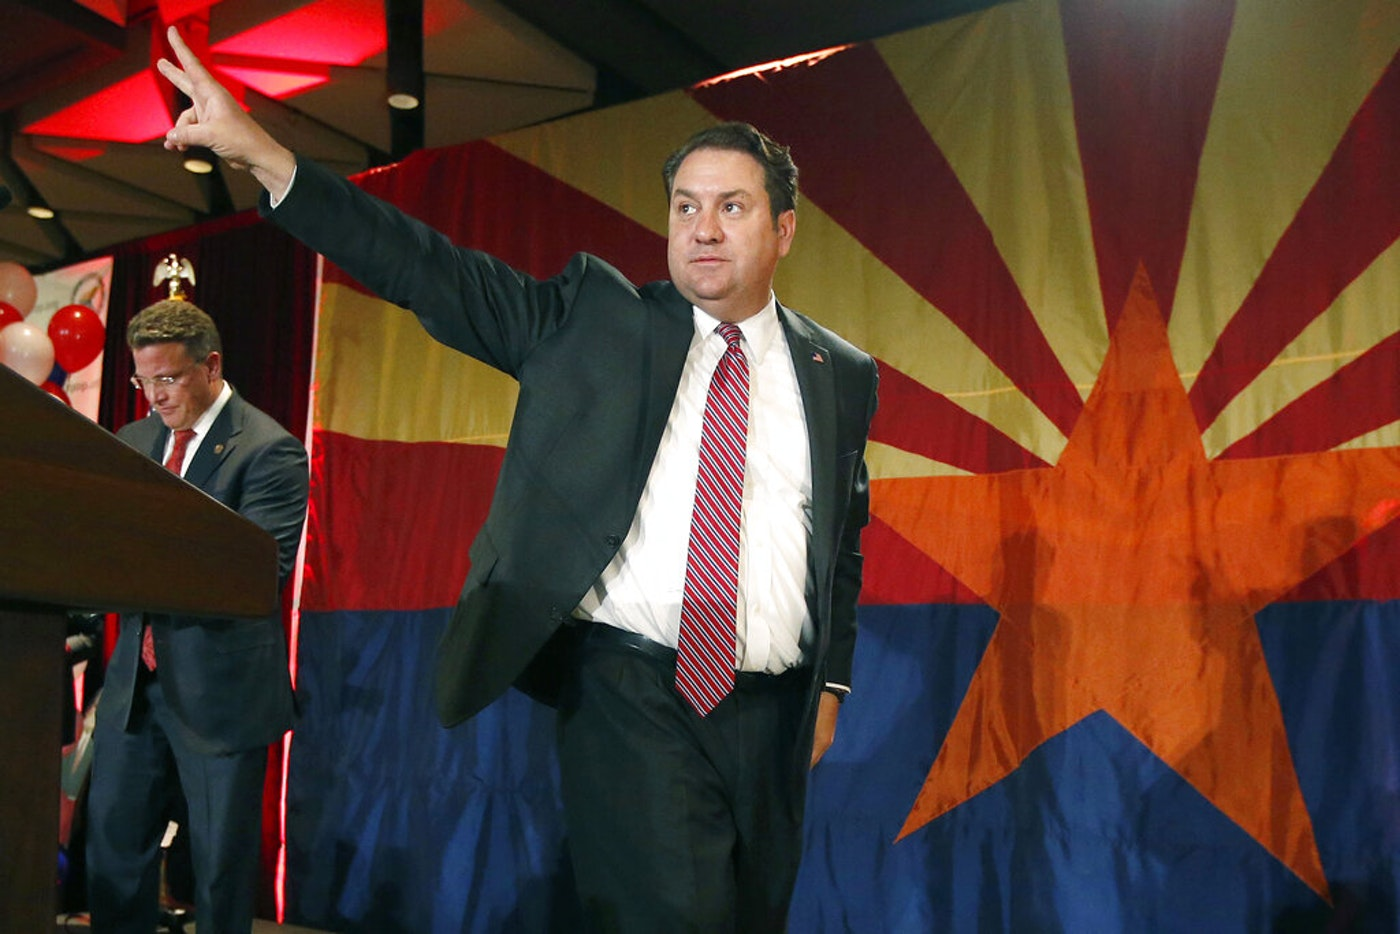 FILE - In this Nov. 4, 2014, file photo, Arizona Republican Attorney General Mark Brnovich waves to supporters at the Republican election night party in Phoenix. Brnovich said Friday, July 26, 2019, that Arizona is poised to resume executions after a five-year hiatus brought on by an execution that critics said was botched, a subsequent lawsuit challenging the way the state carries out the death penalty, and the difficulty of finding lethal injection drugs. (AP Photo/Ross D. Franklin, File)